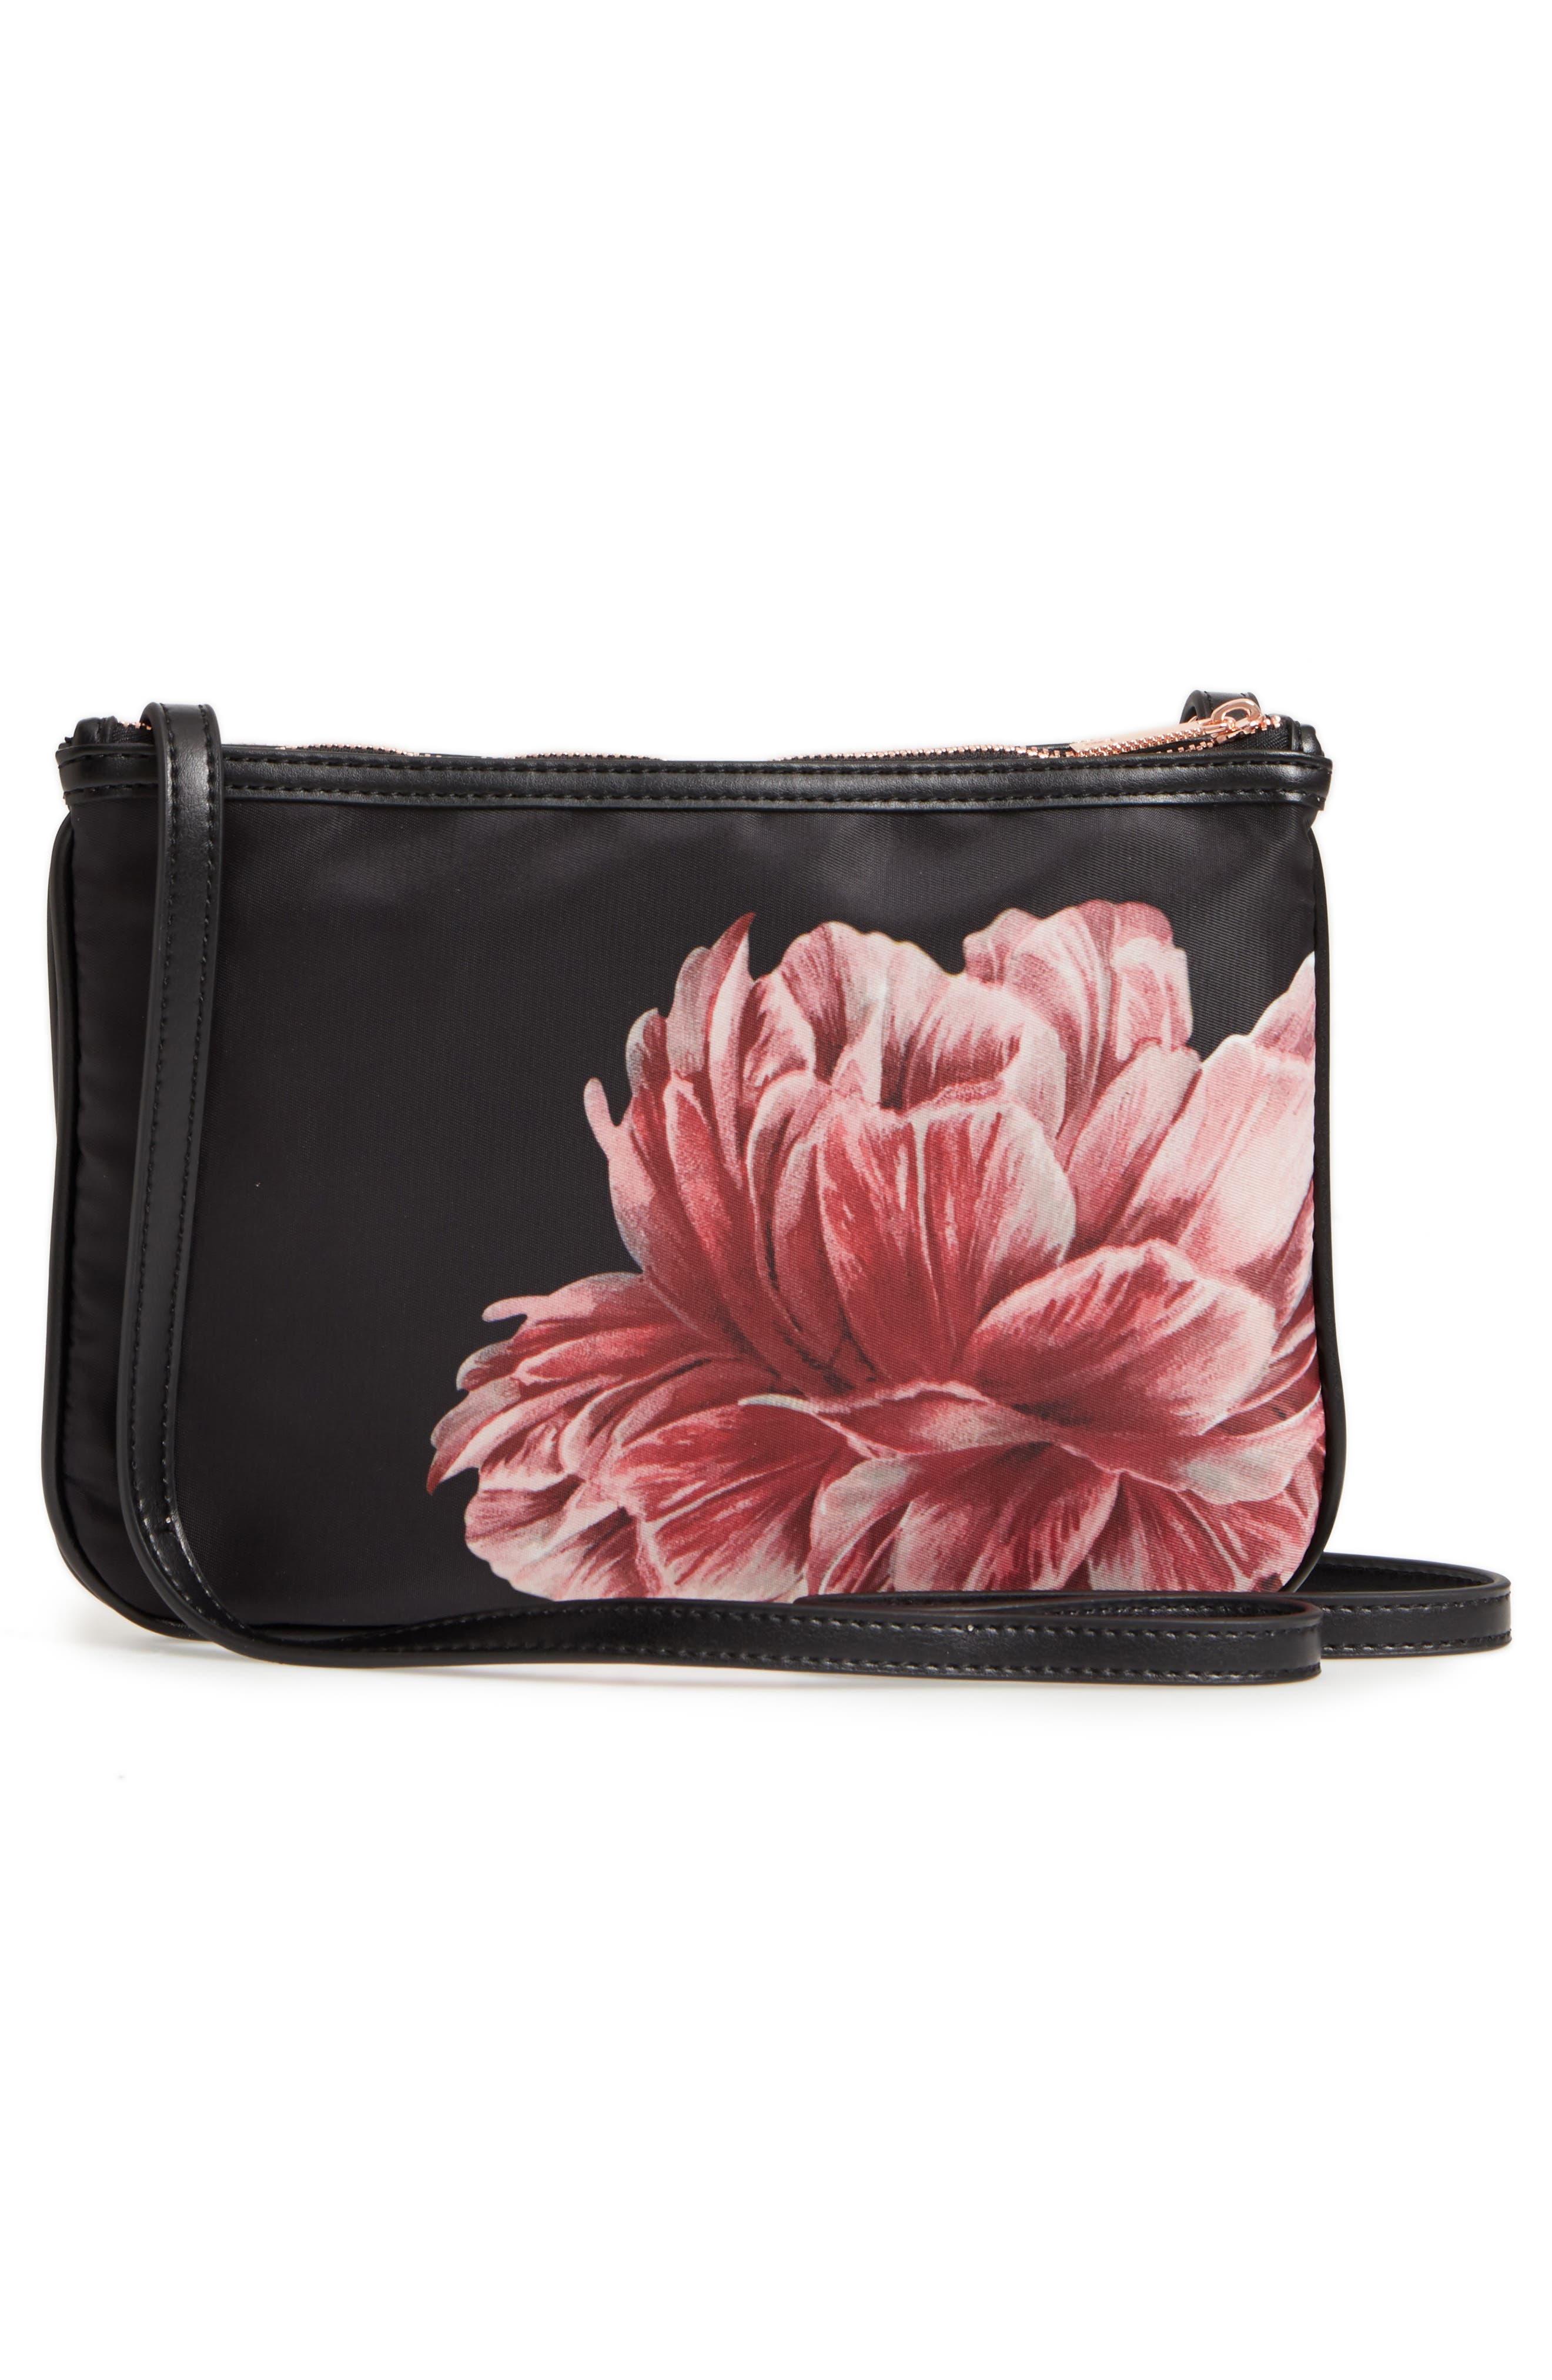 Tranquility Crossbody Bag,                             Alternate thumbnail 3, color,                             BLACK